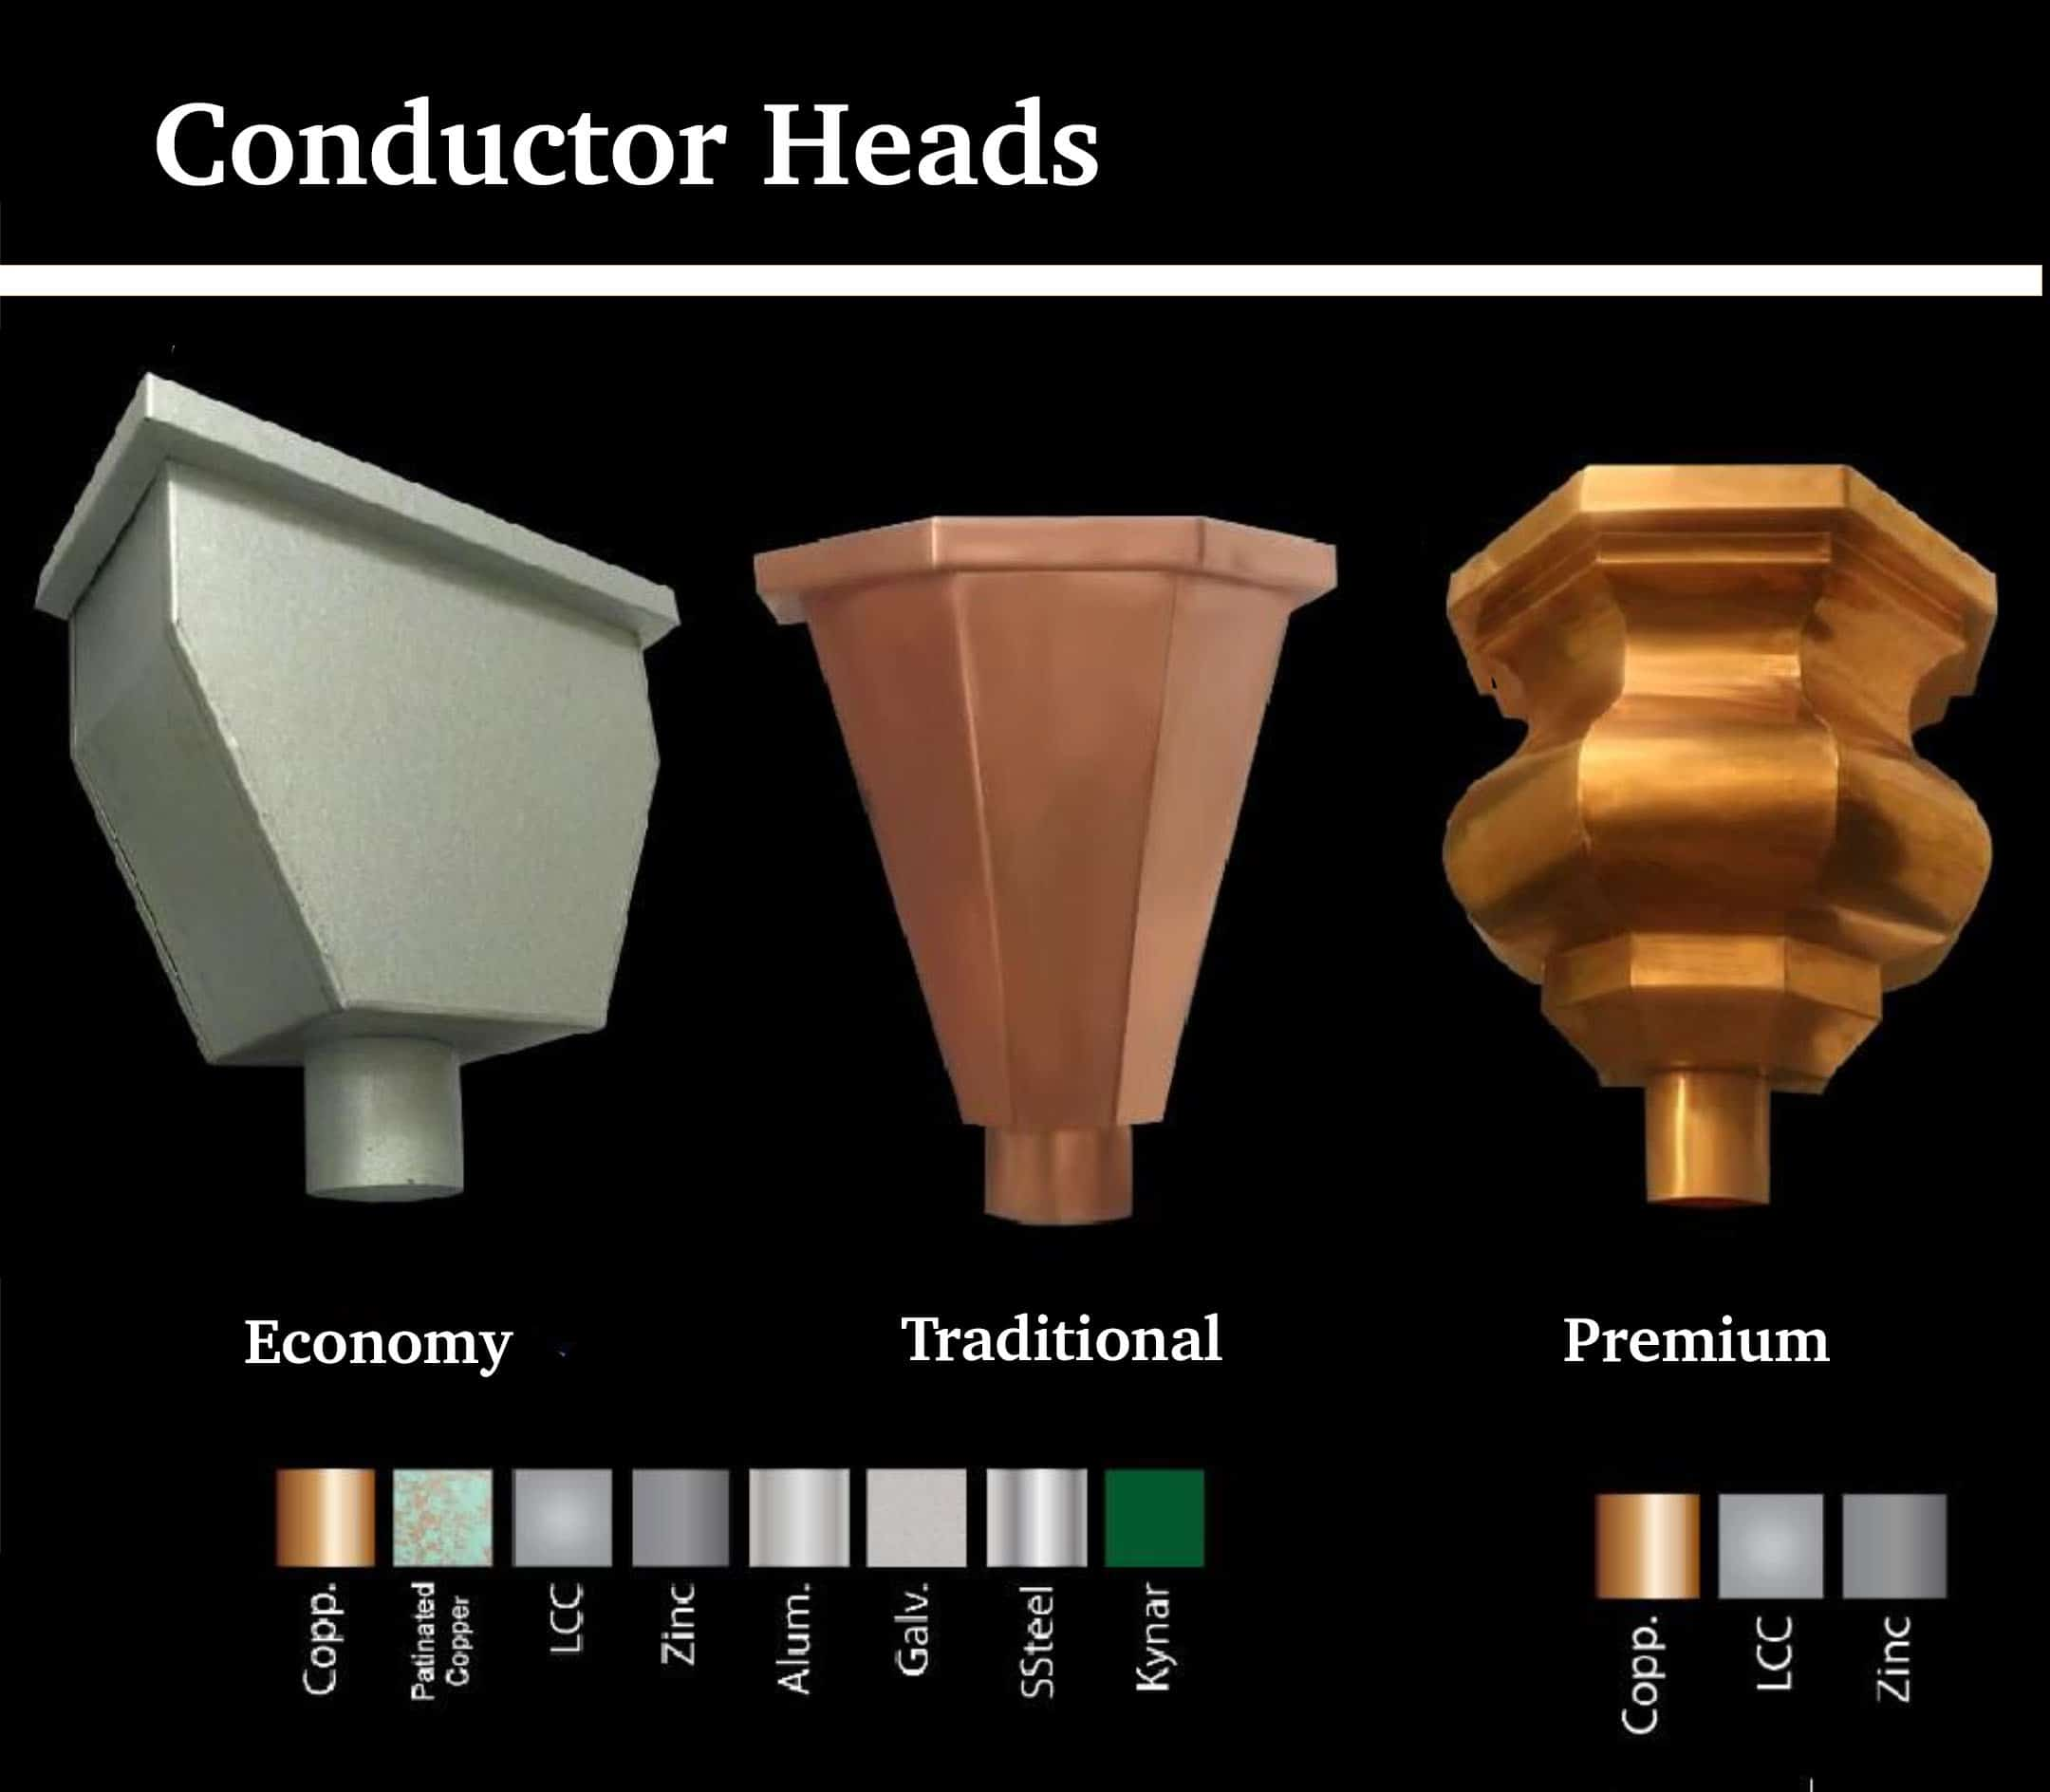 Leader Heads And Conductor Heads : Conductor heads outer banks i gallop roofing remodeling